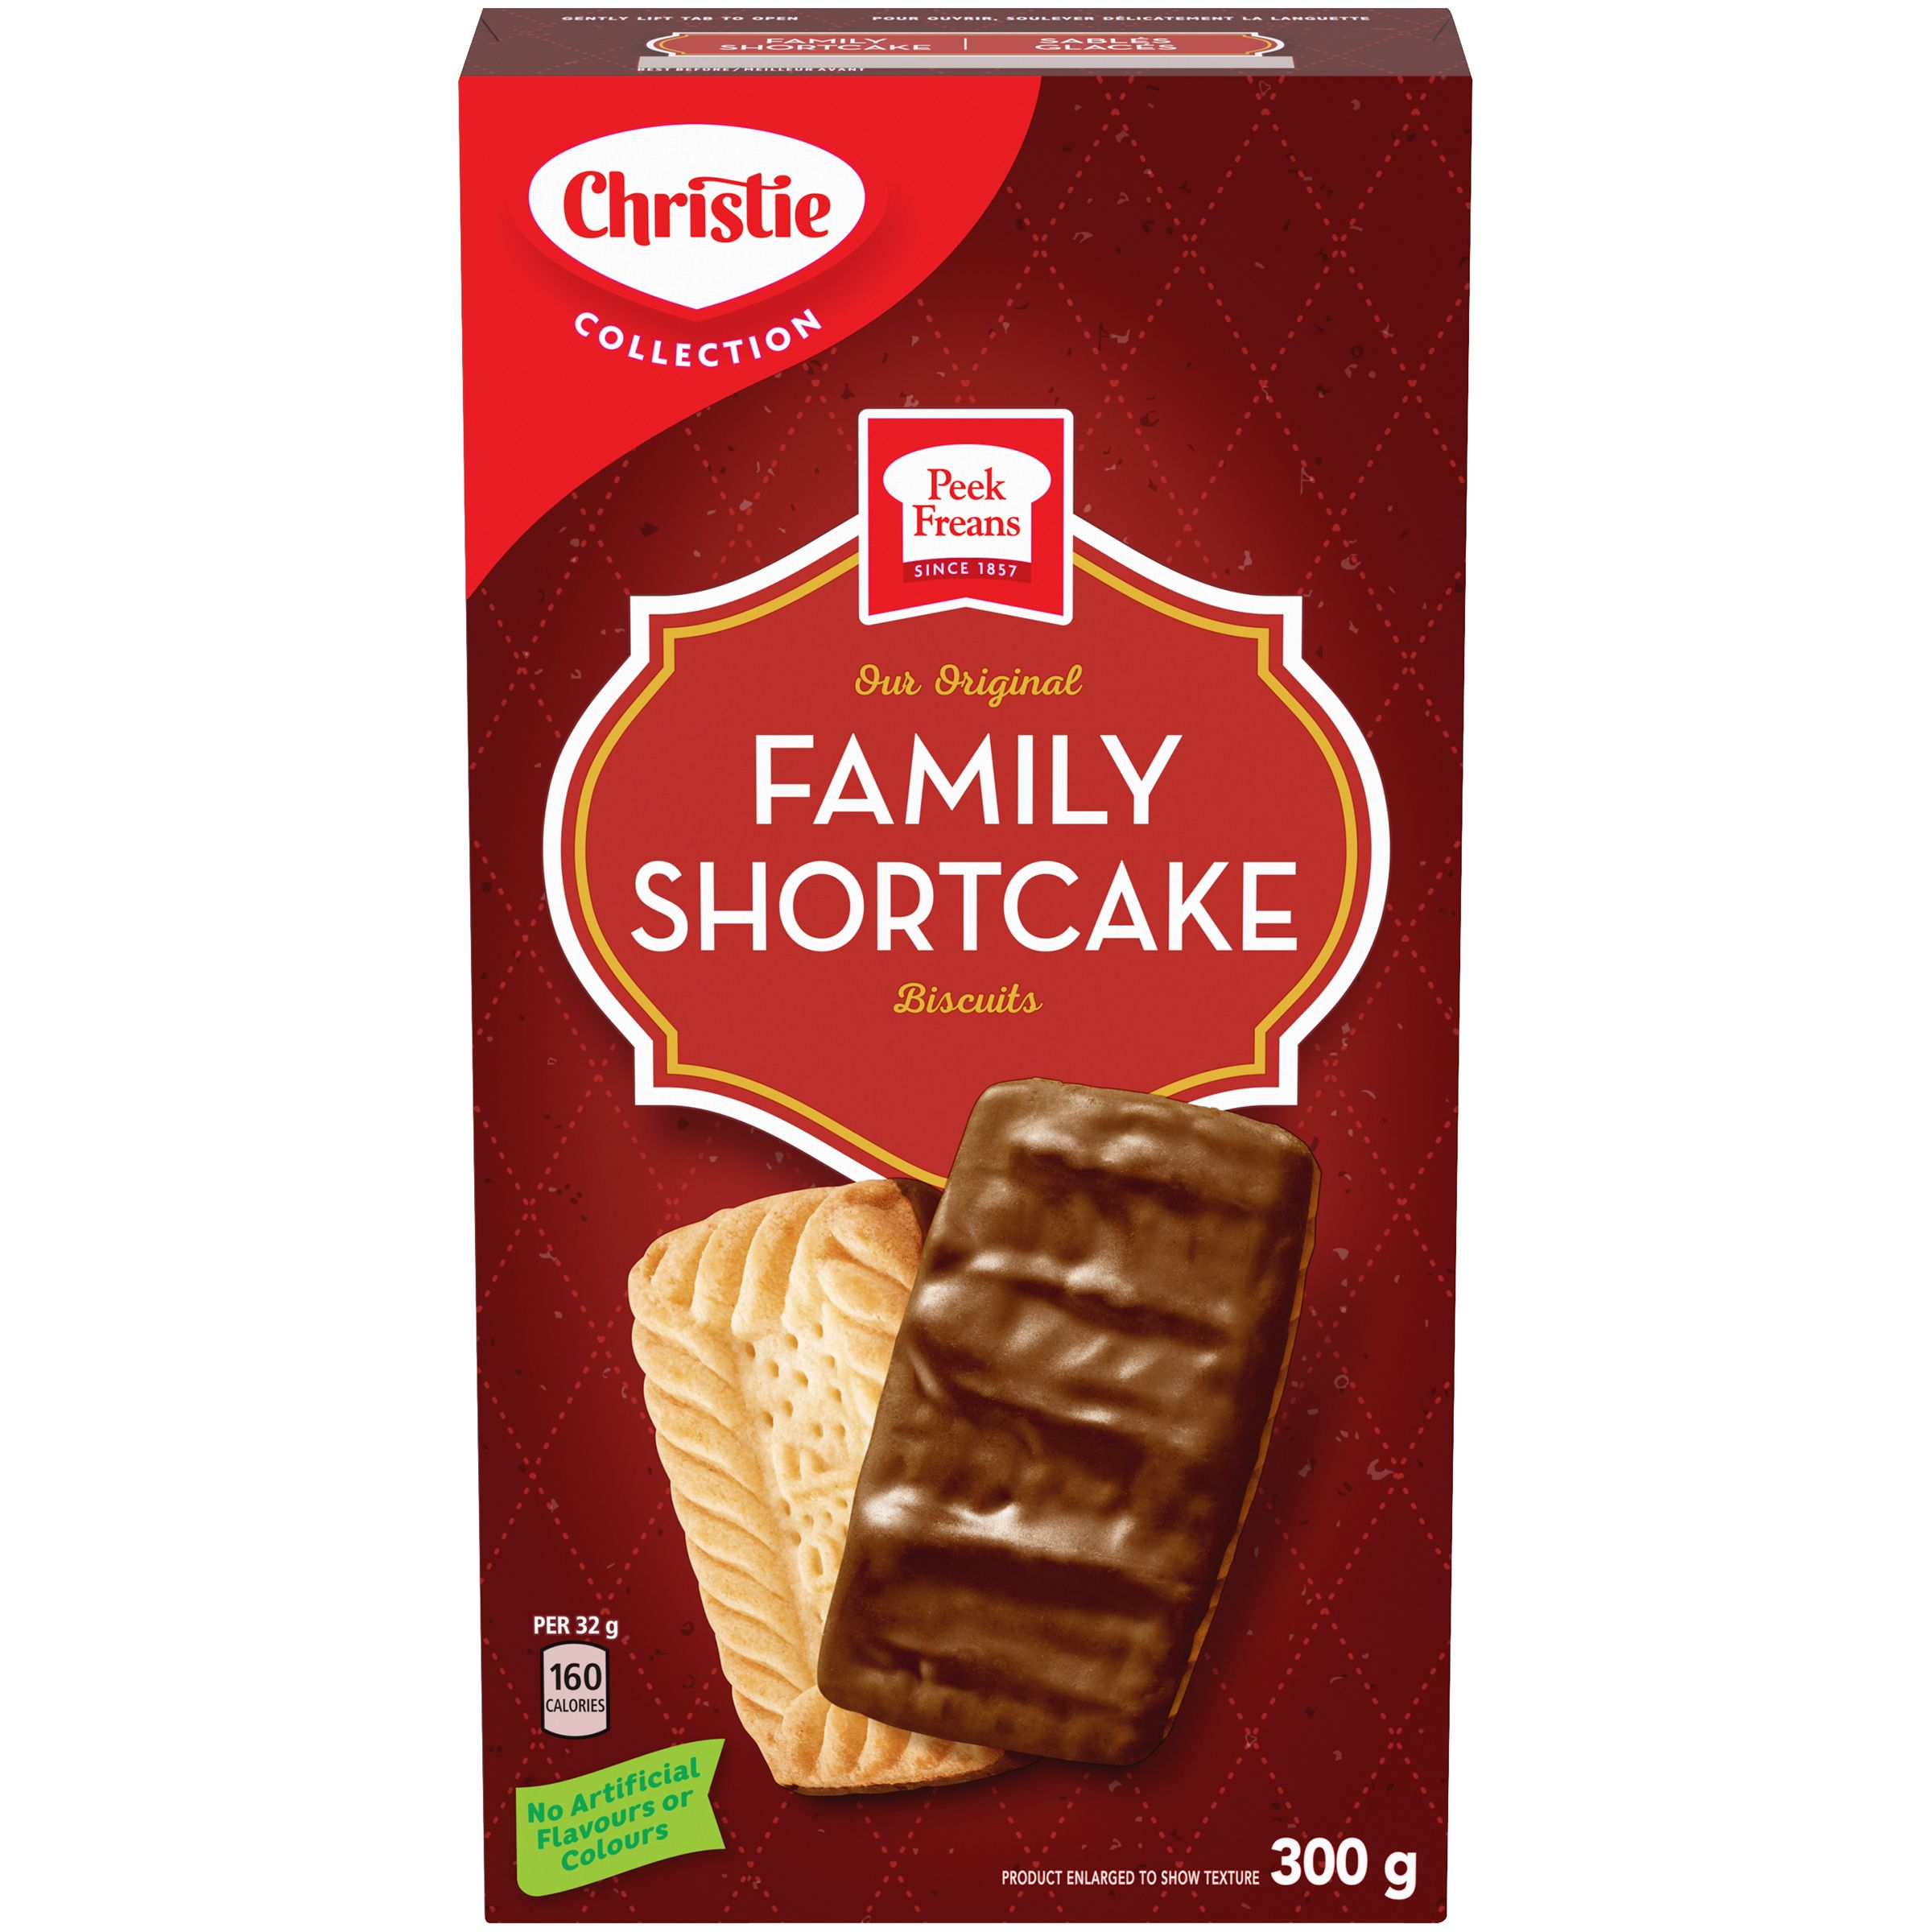 Peek Freans Family Shortcake Biscuits 300 G